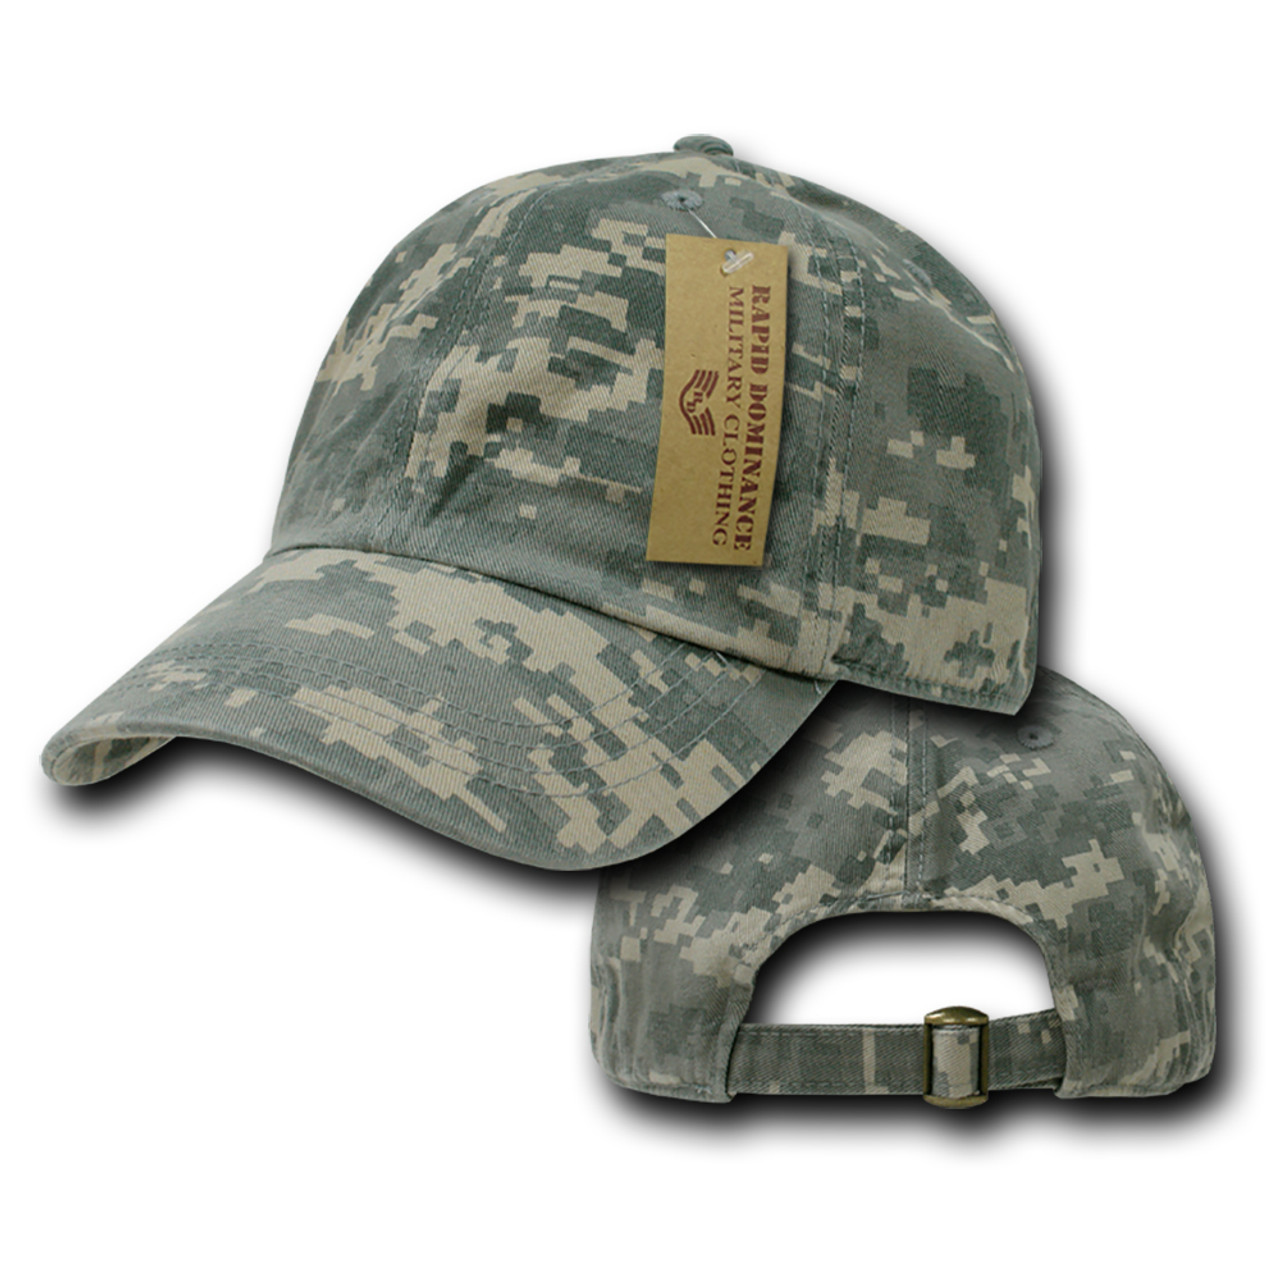 Universal Digital Camo Army Washed Cotton Polo Baseball Ball Cap Hat fdd51e1dd57